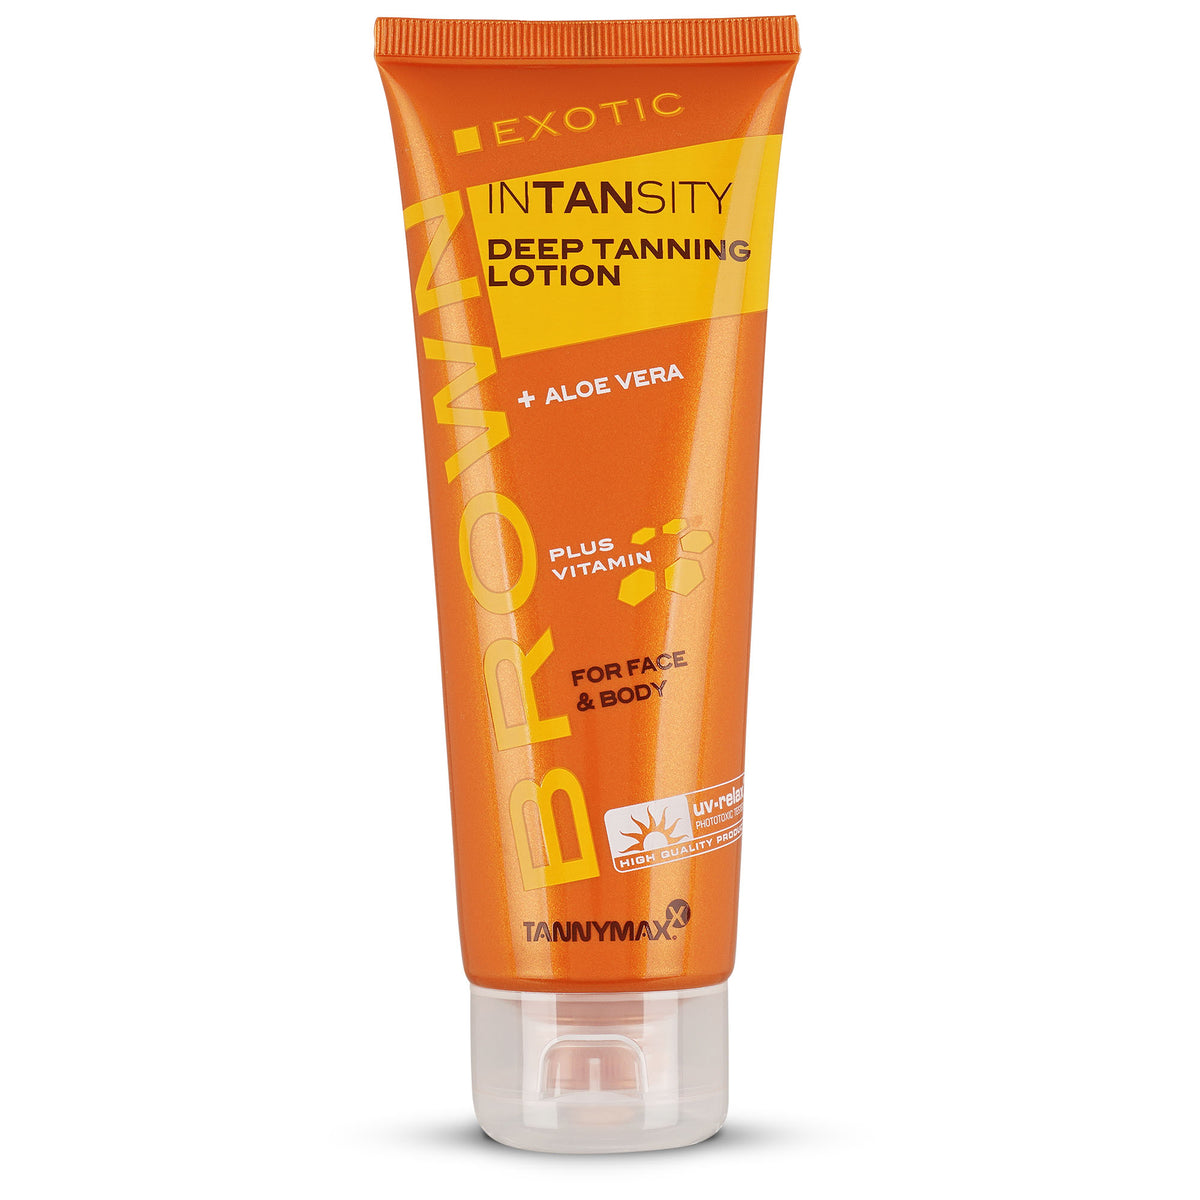 Exotic Intansity Deep Tanning Lotion